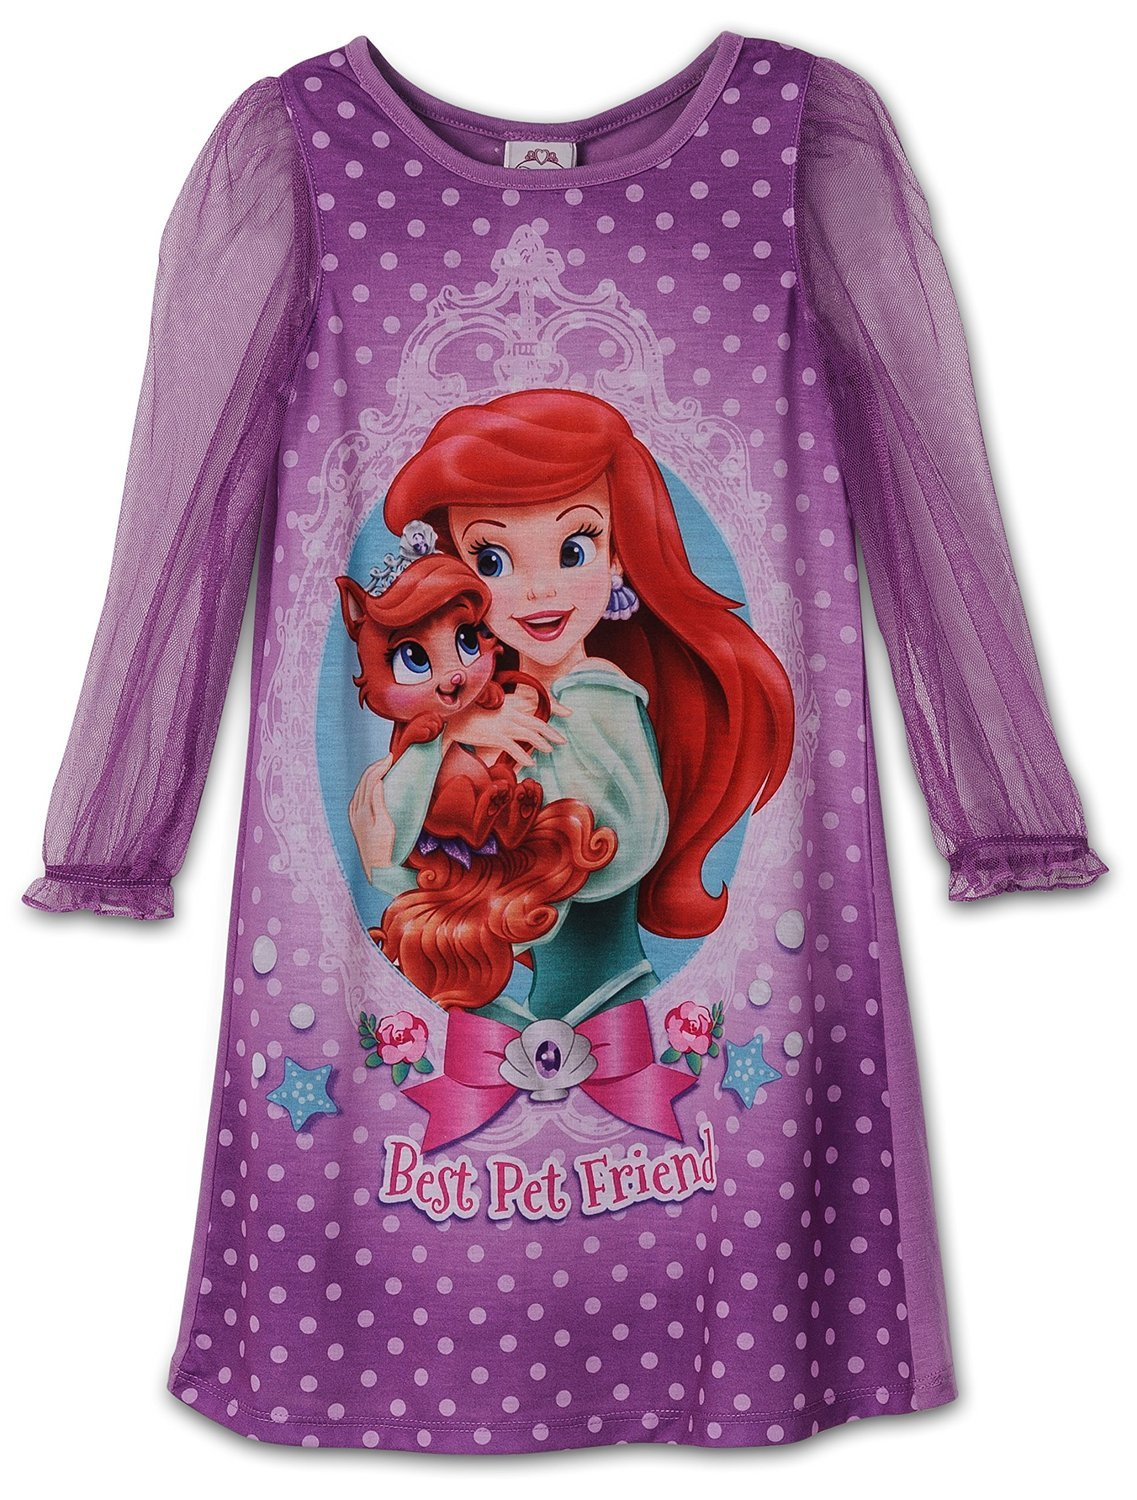 Disney Little Girls Princess Palace Pets Toddler Gown, Nighty sizes 2T-4T Nightgown Sizes 2T-4T - - Komar Brands